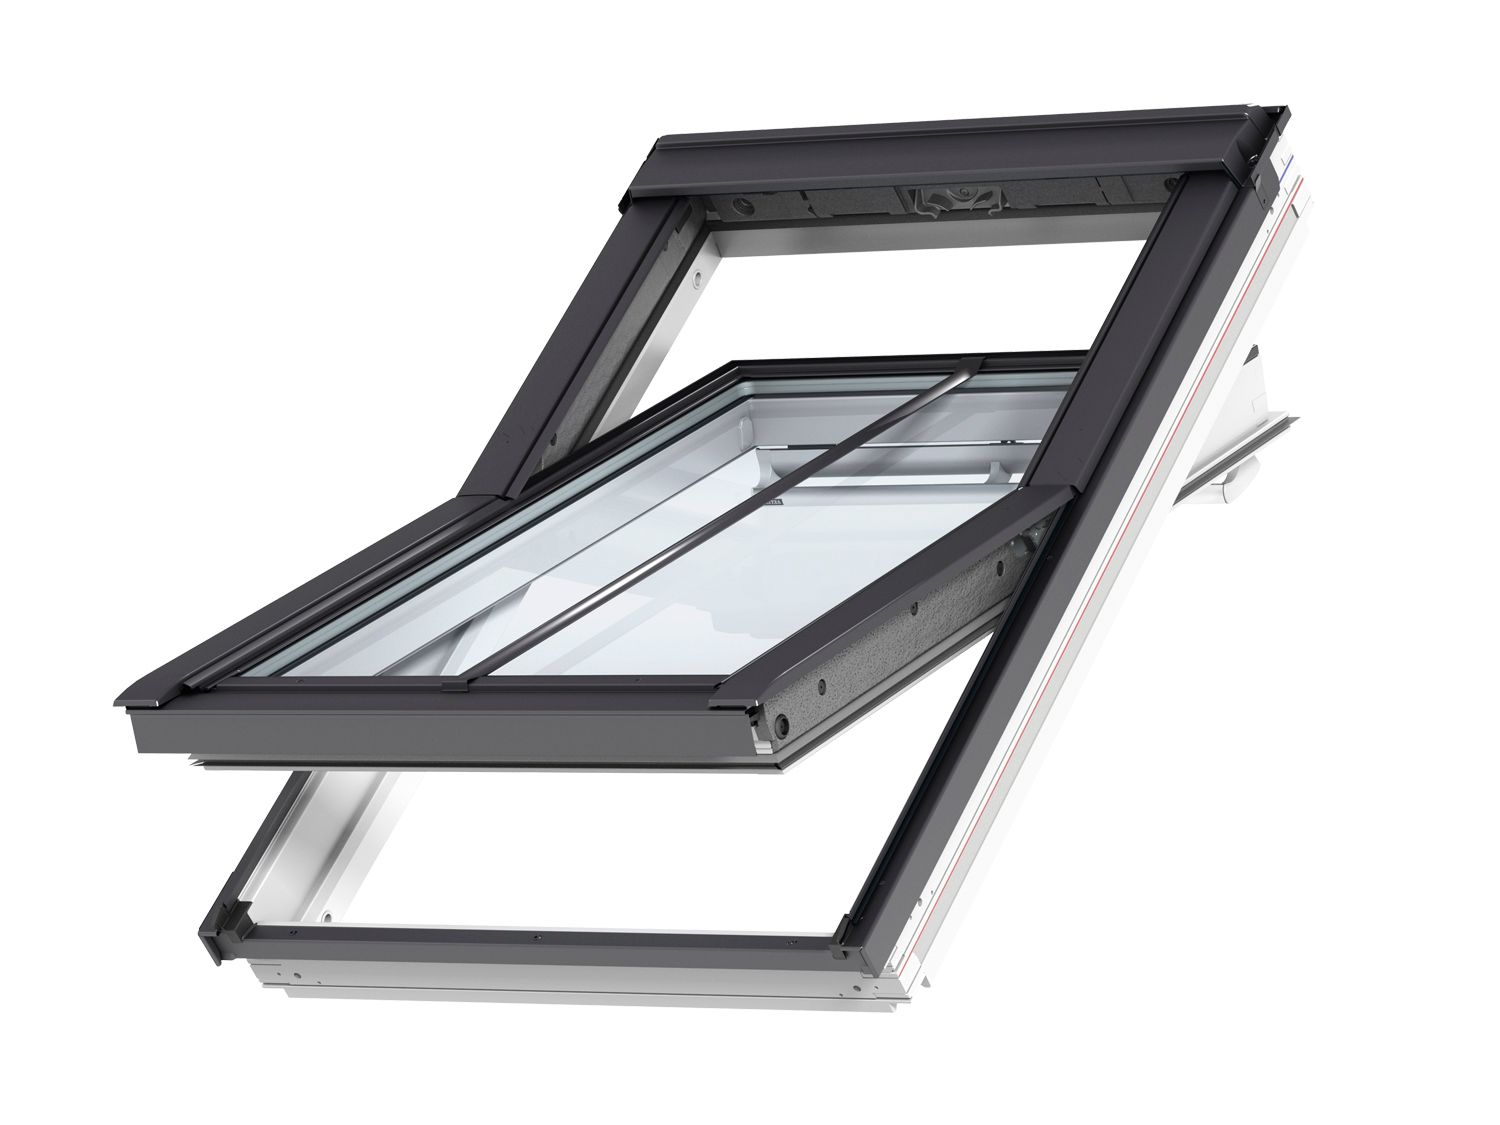 Ggl Mk04 Velux Integra Solar Roof Window 780mm X 980mm White Painted Ggl Mk04 206630